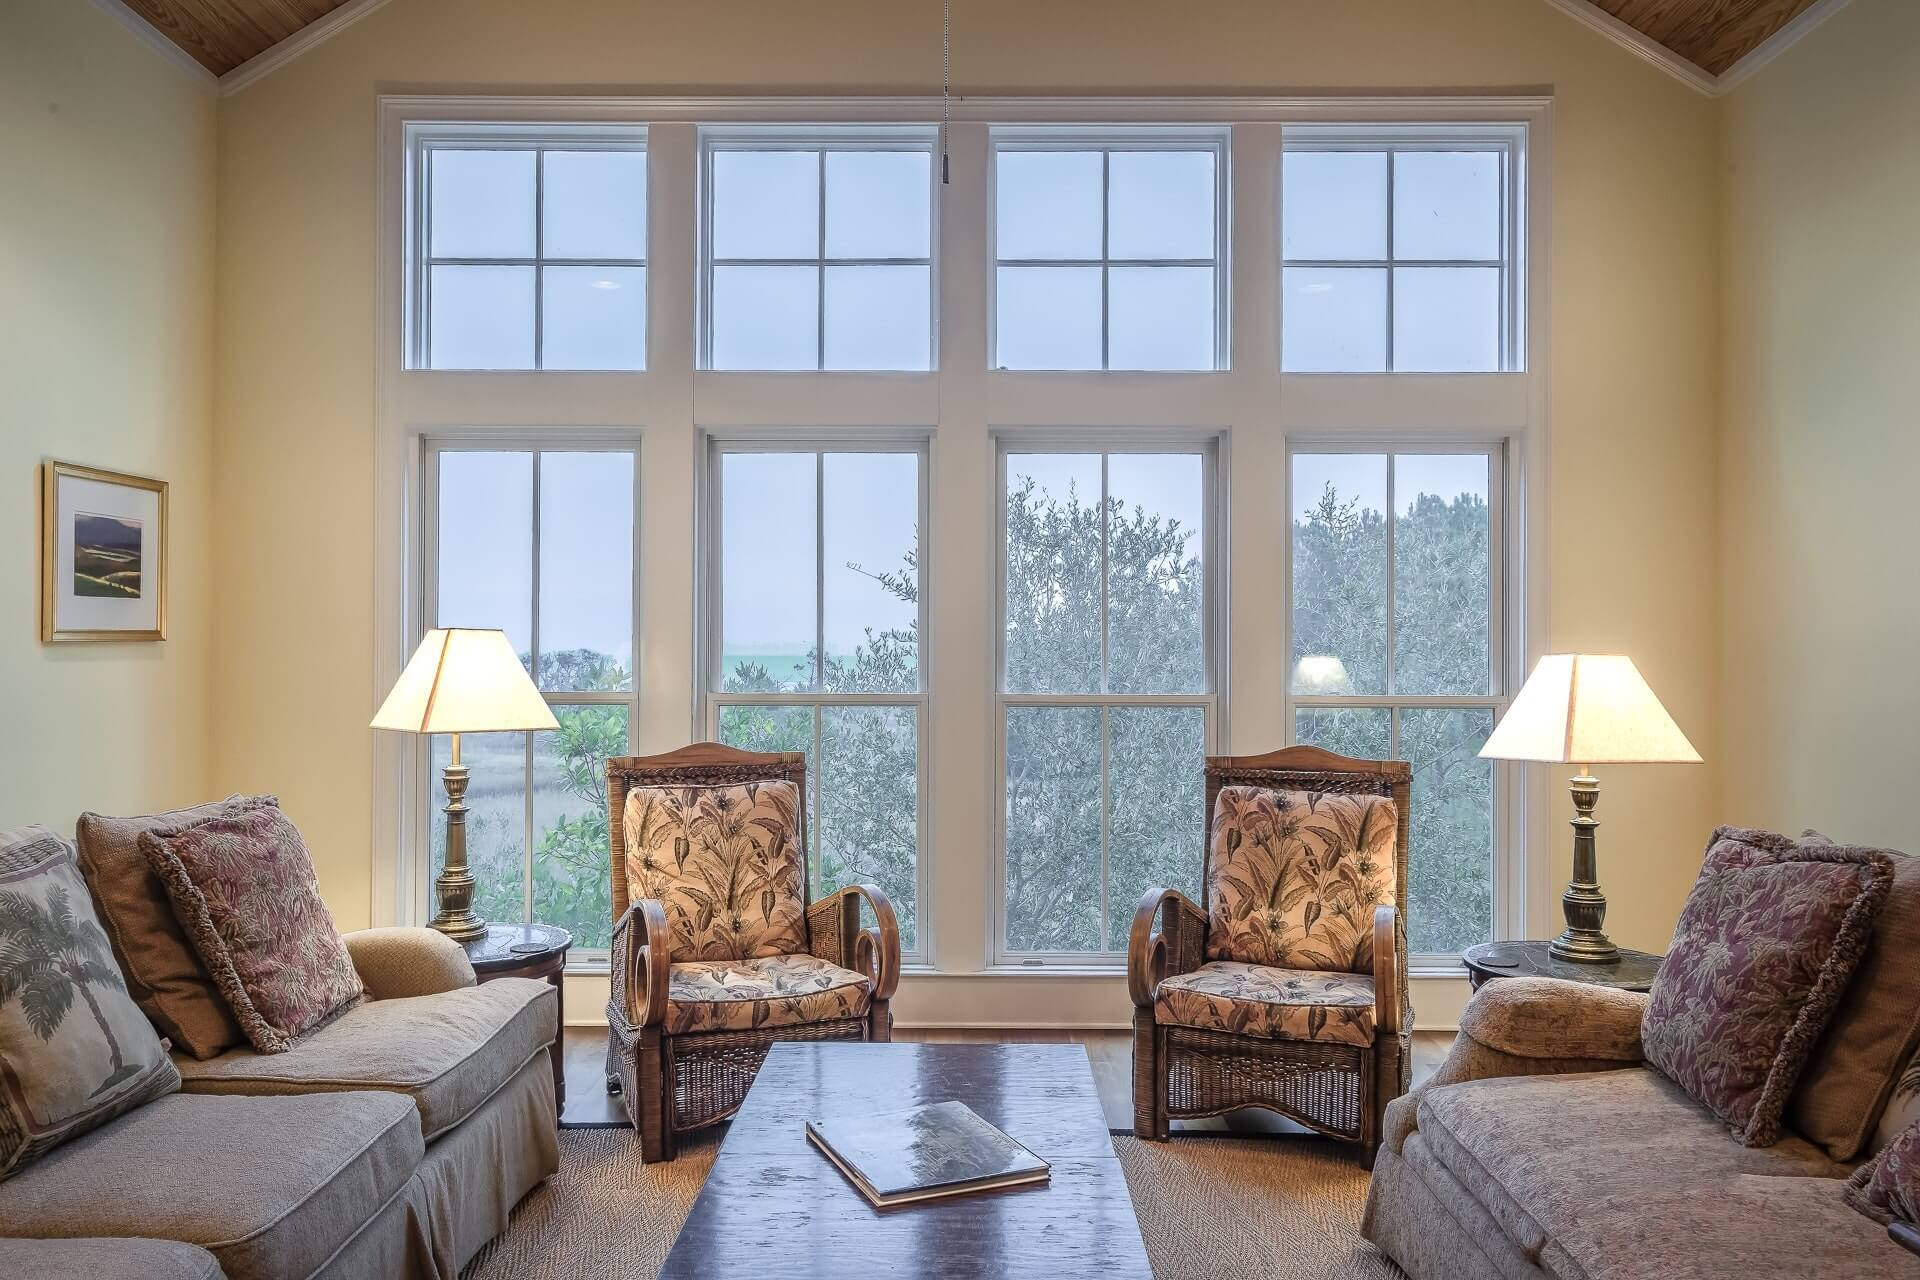 Custom vinly replacement windows by Restoration Windows provide ample light and beauty to any room